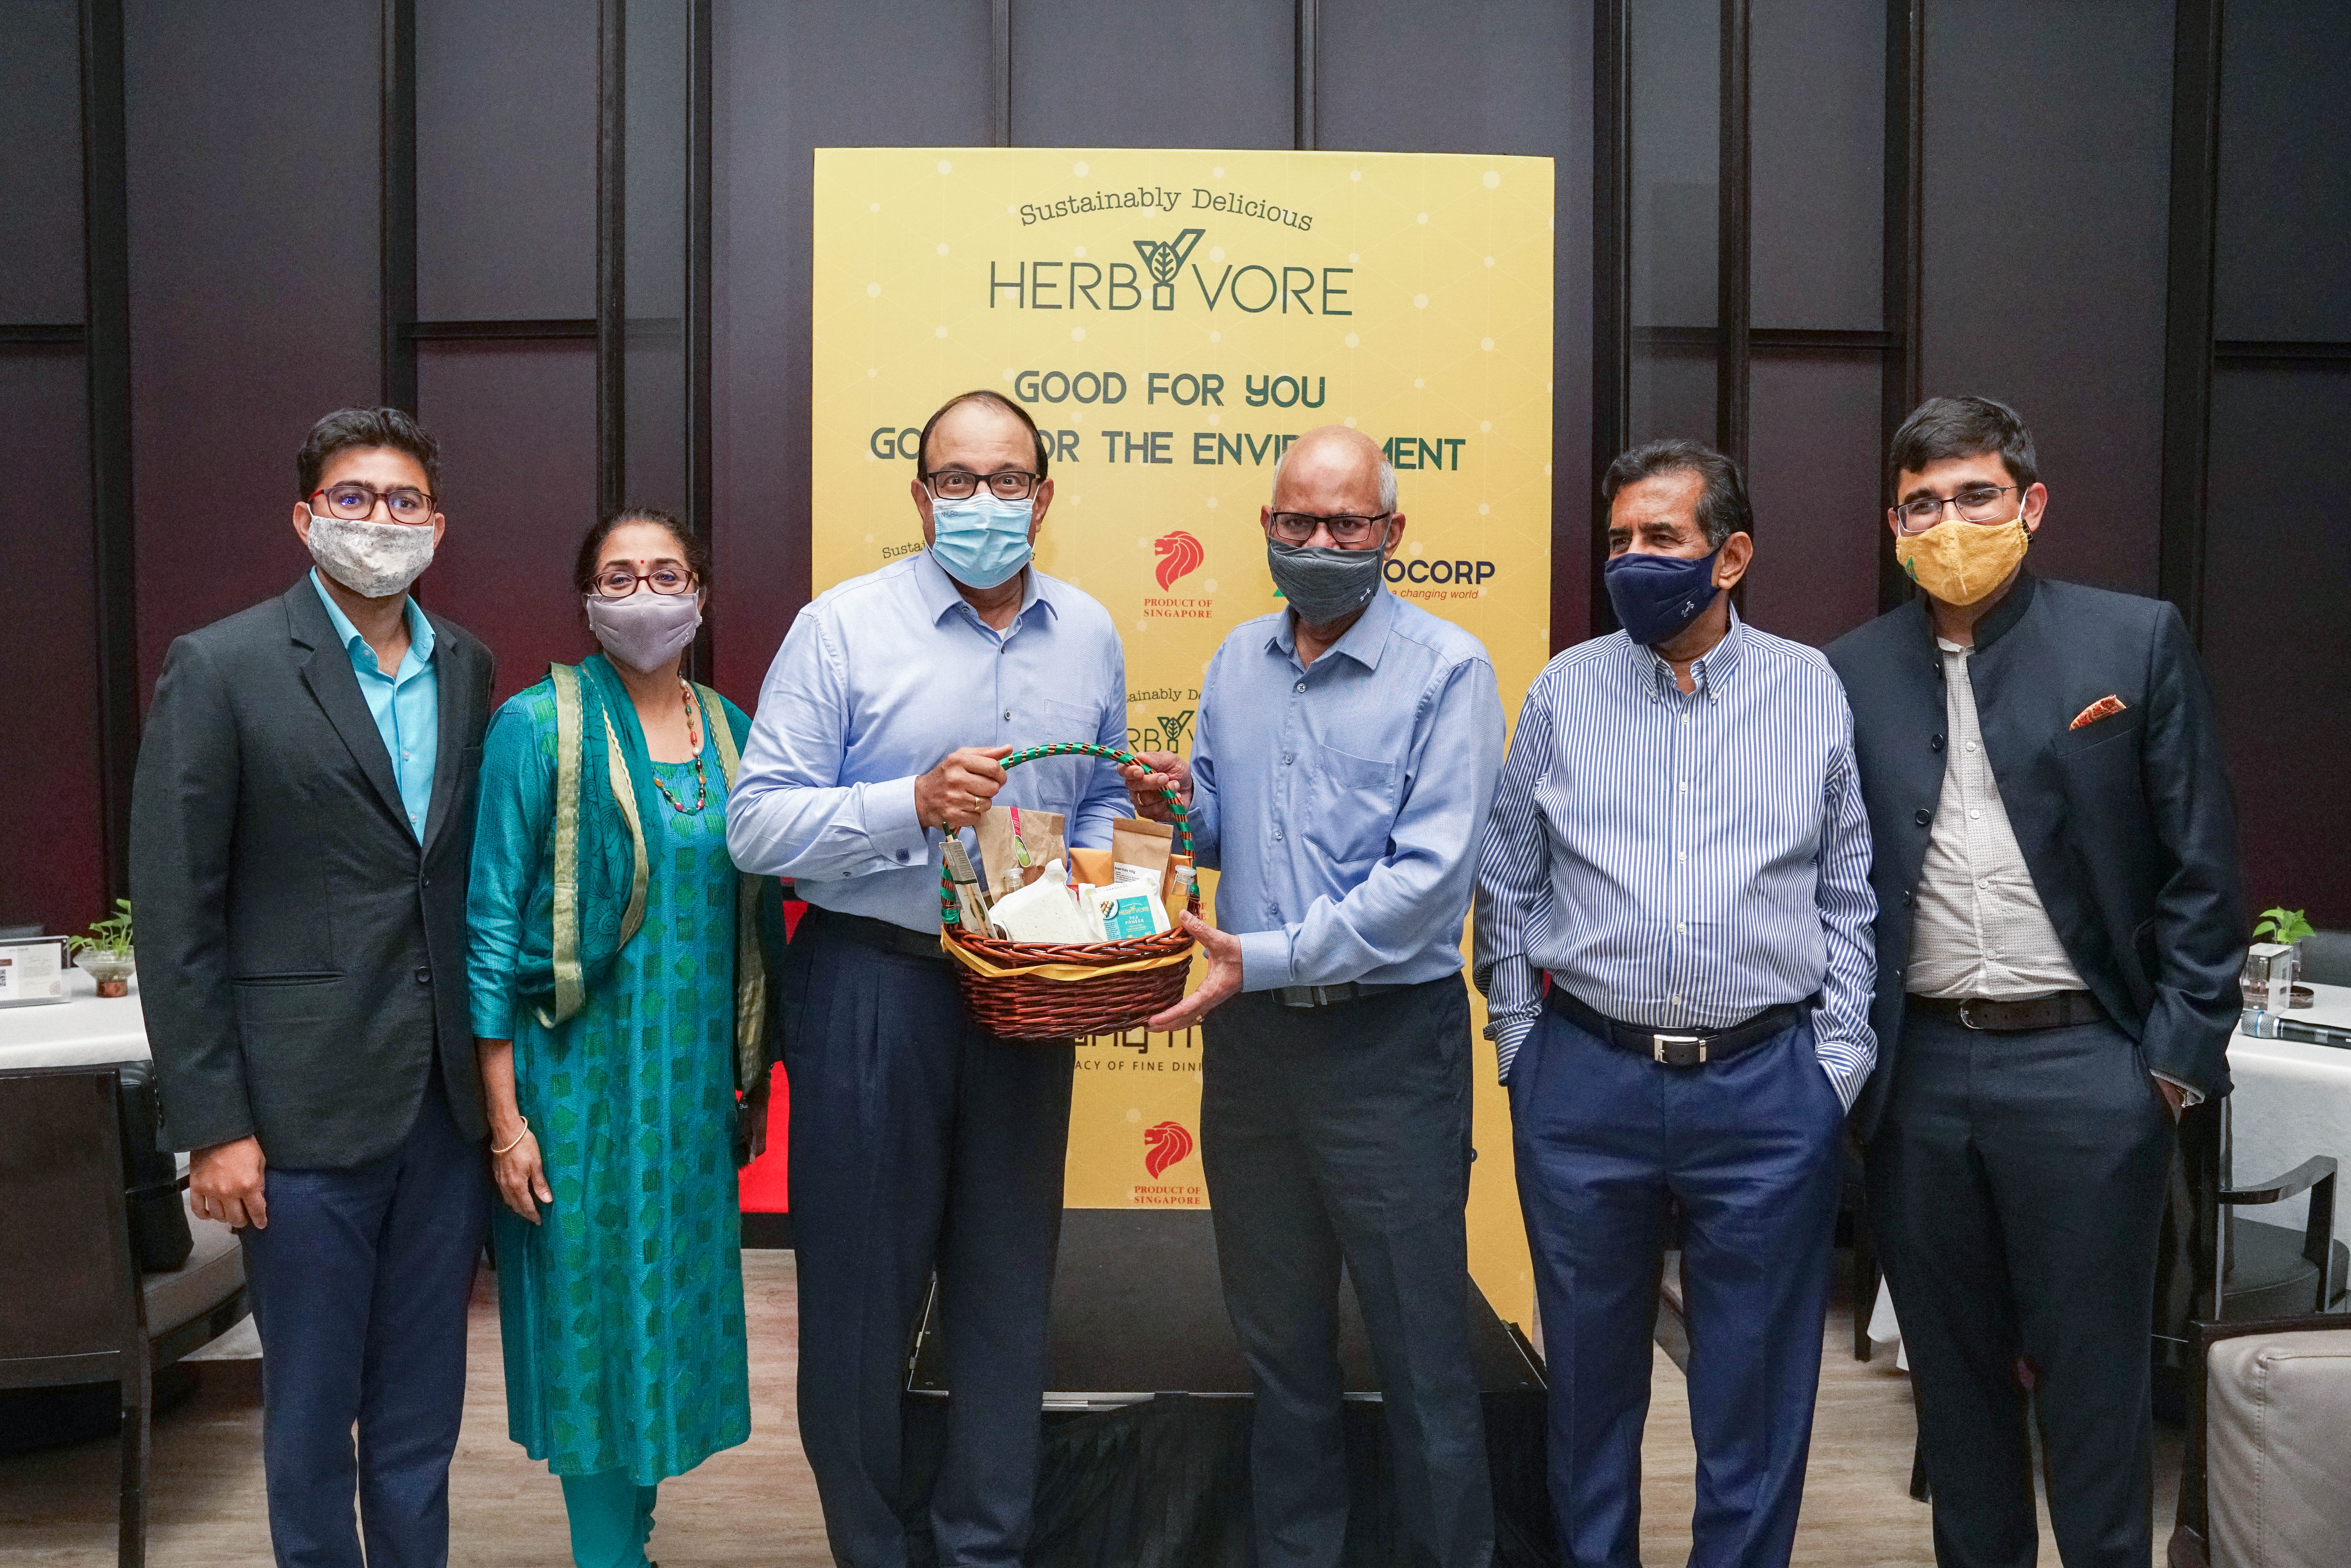 Agrocorp launched their new plant-based food brand HerbYvore that recently released its first product - the pea paneer. Photo courtesy: Agrocorp